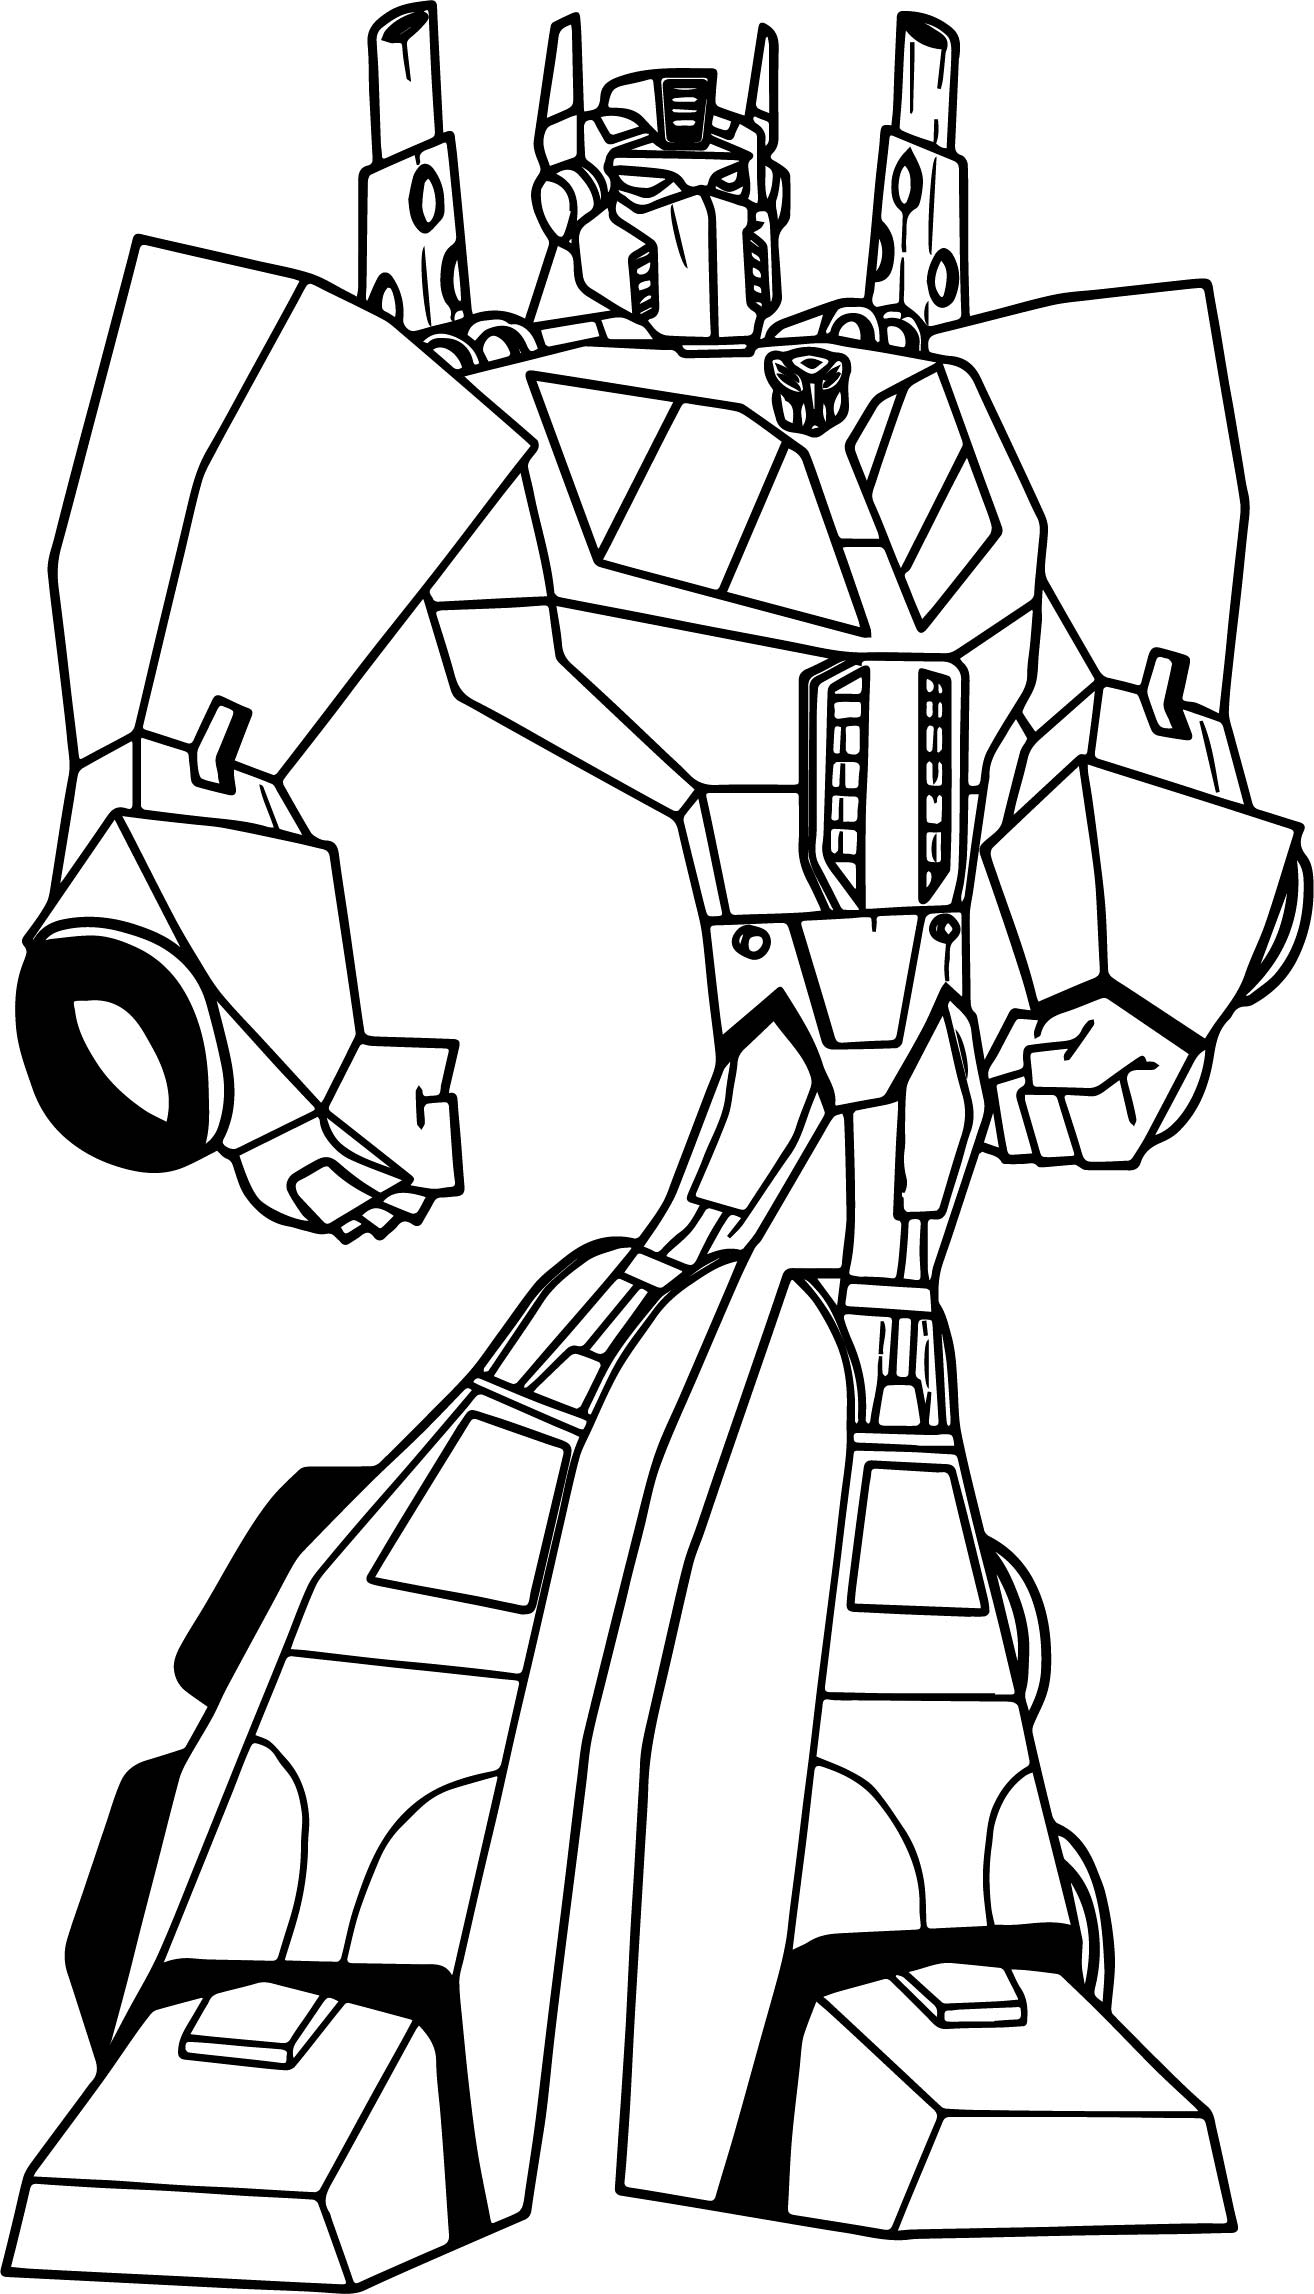 Powered transformers coloring page for Transformers animated coloring pages